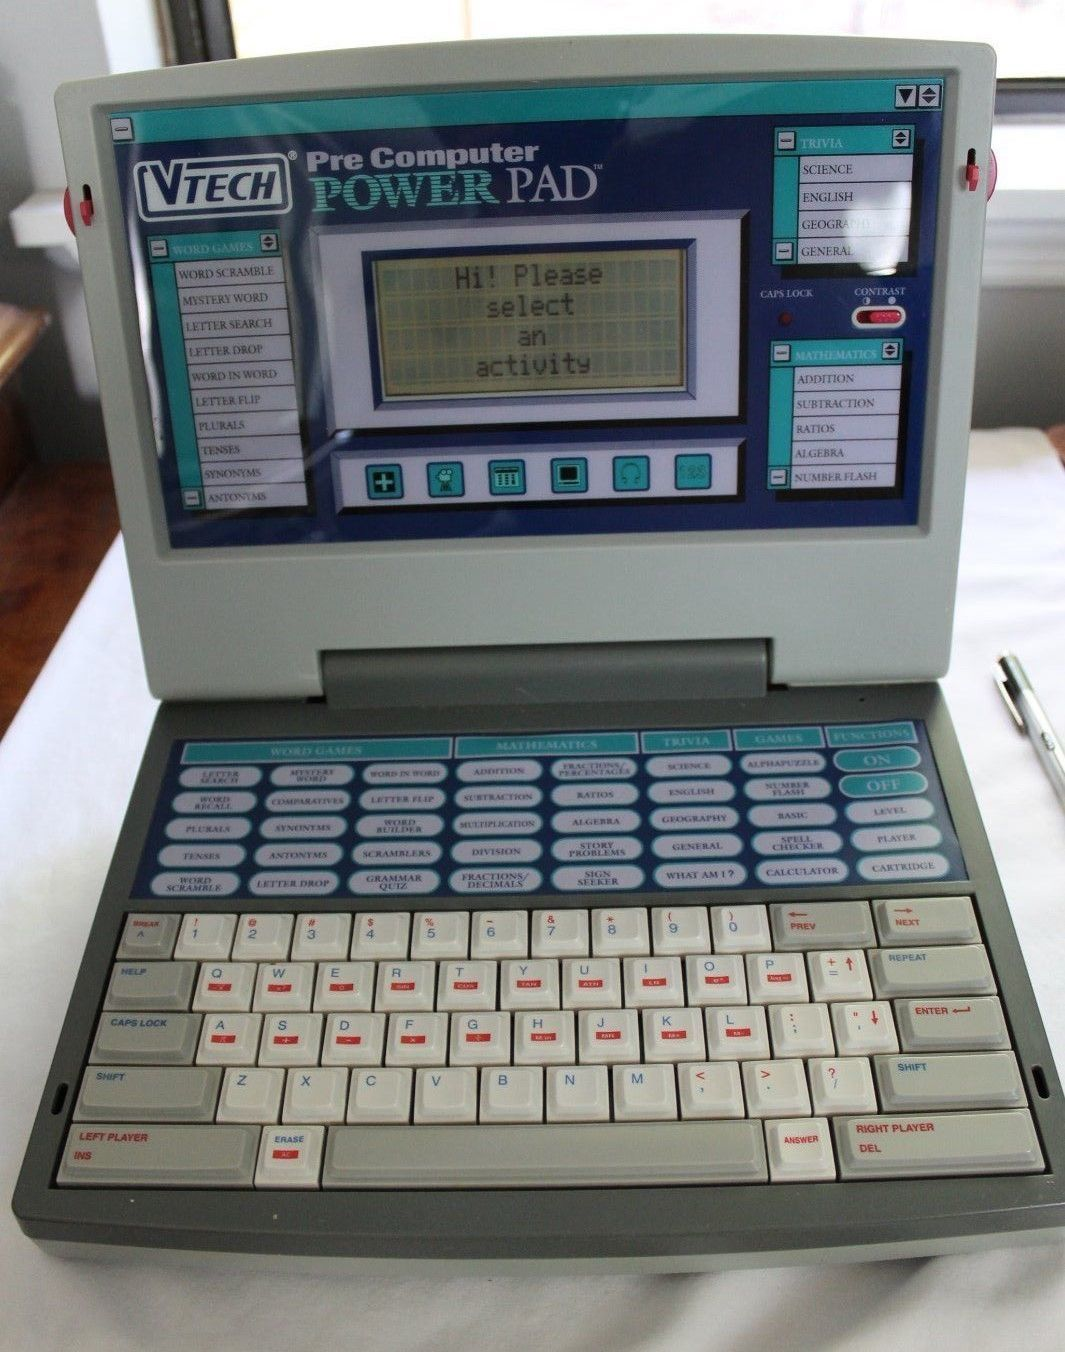 Vintage 1994 Vtech Pre Computer Power Pad Educational Learning Laptop Toy Works Kids Computer Kids Learning Computer Computer